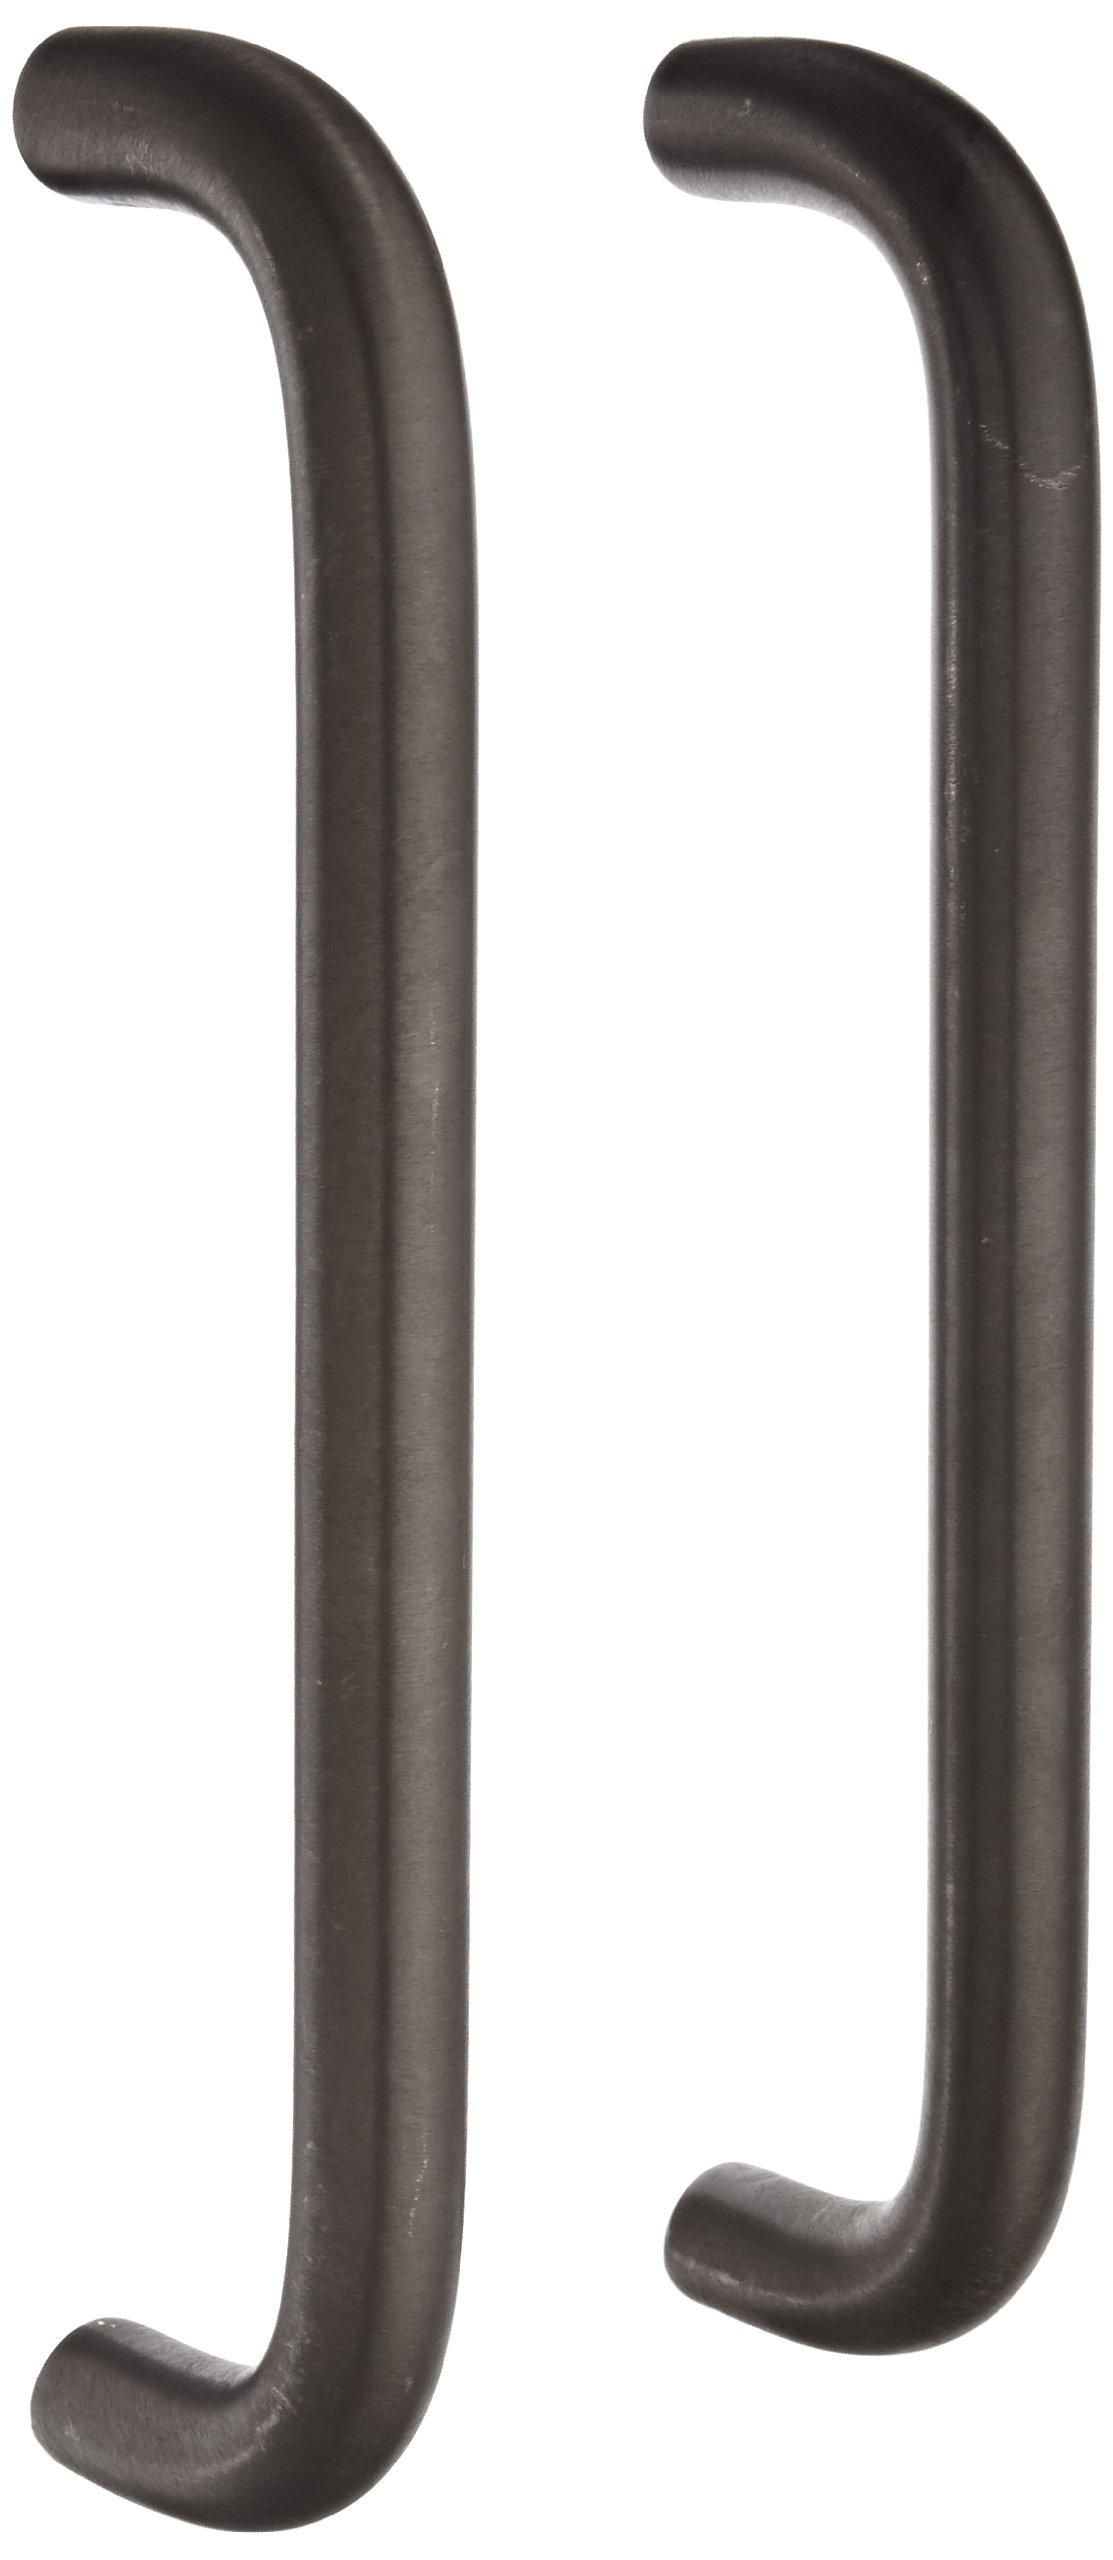 Rockwood 108BTB5.10B Bronze Straight Door Pull Set for 1-3/4'' Metal or Wood Door, 3/4'' Diameter x 10'' Center-to-Center, Type 5 Back to Back Mount, Satin Oxidized Oil Rubbed Finish